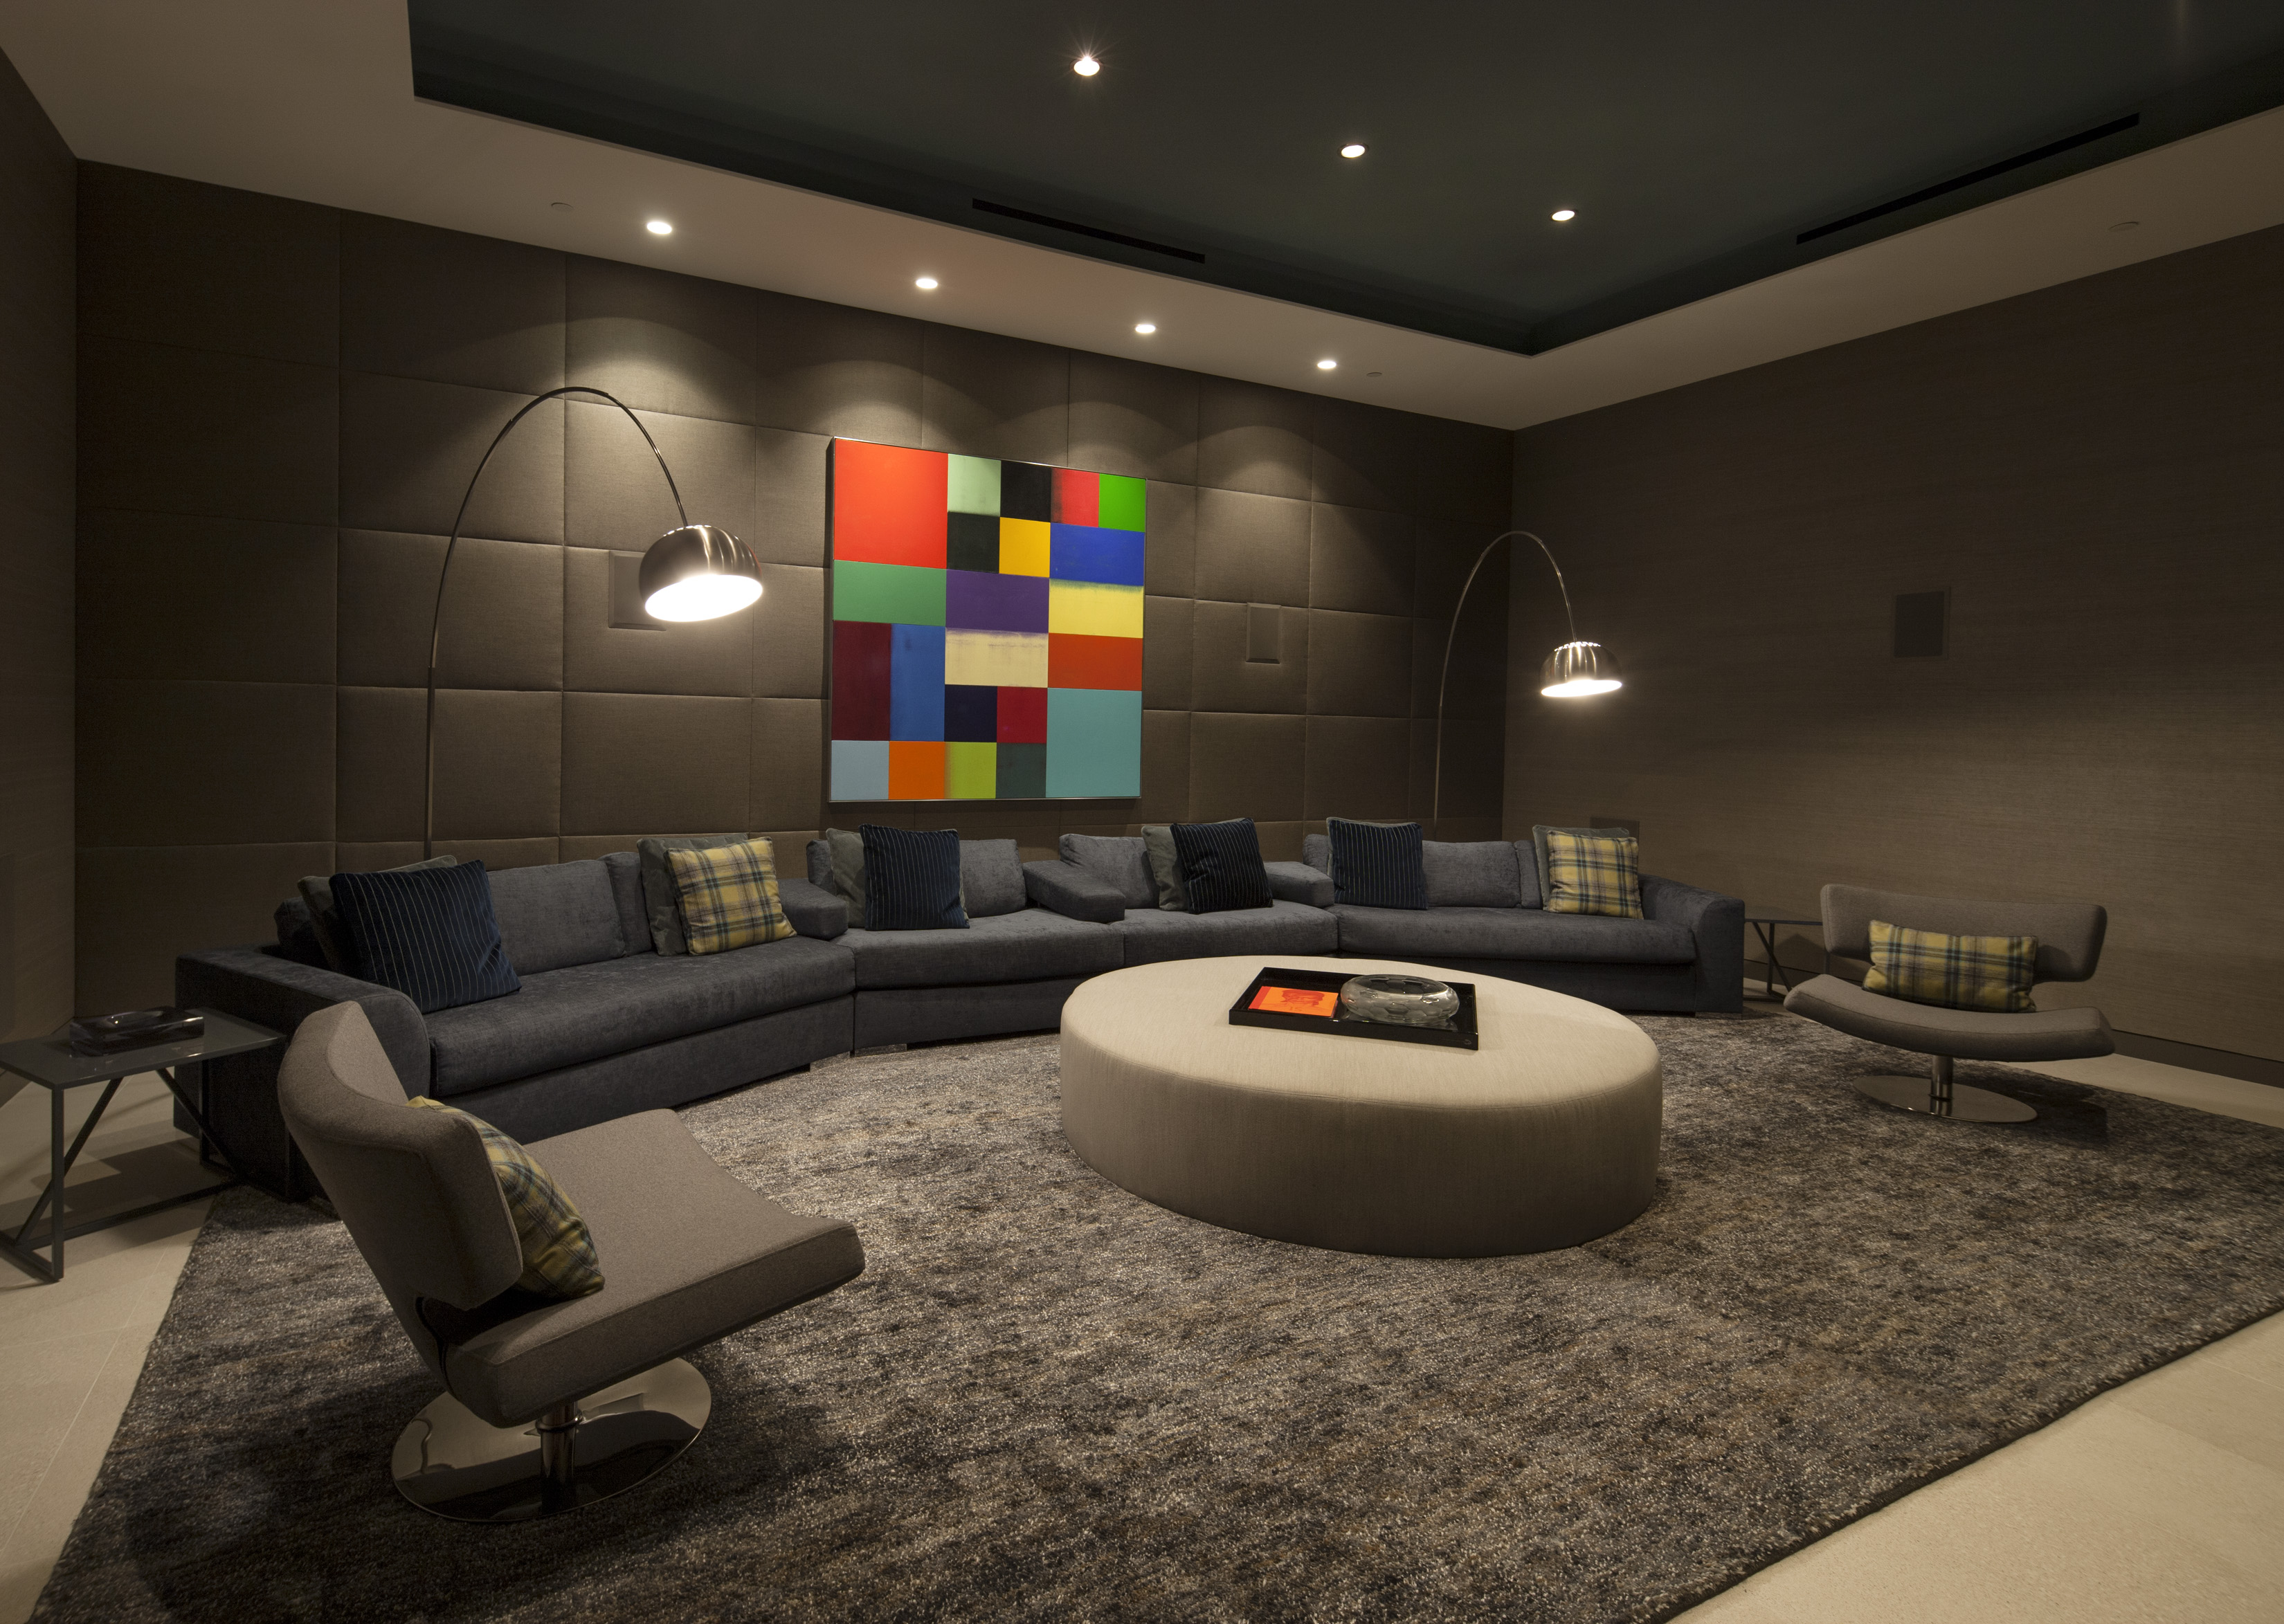 Home cinema room interior design ideas Home cinema interior design ideas